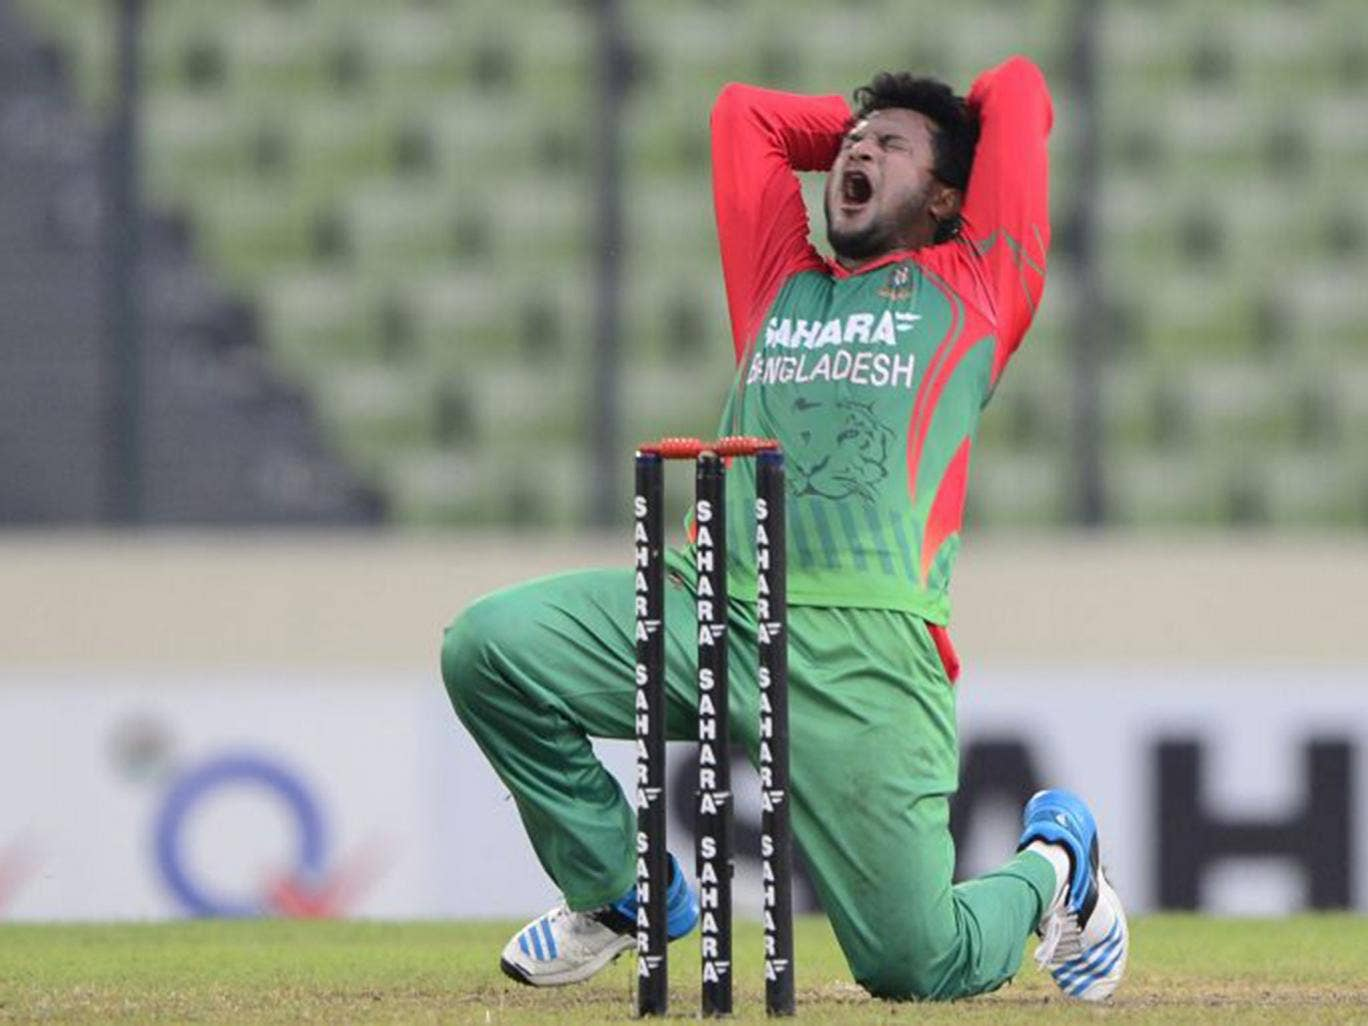 The 27-year-old all-rounder has played 34 tests and 136 one-day-internationals for Bangladesh